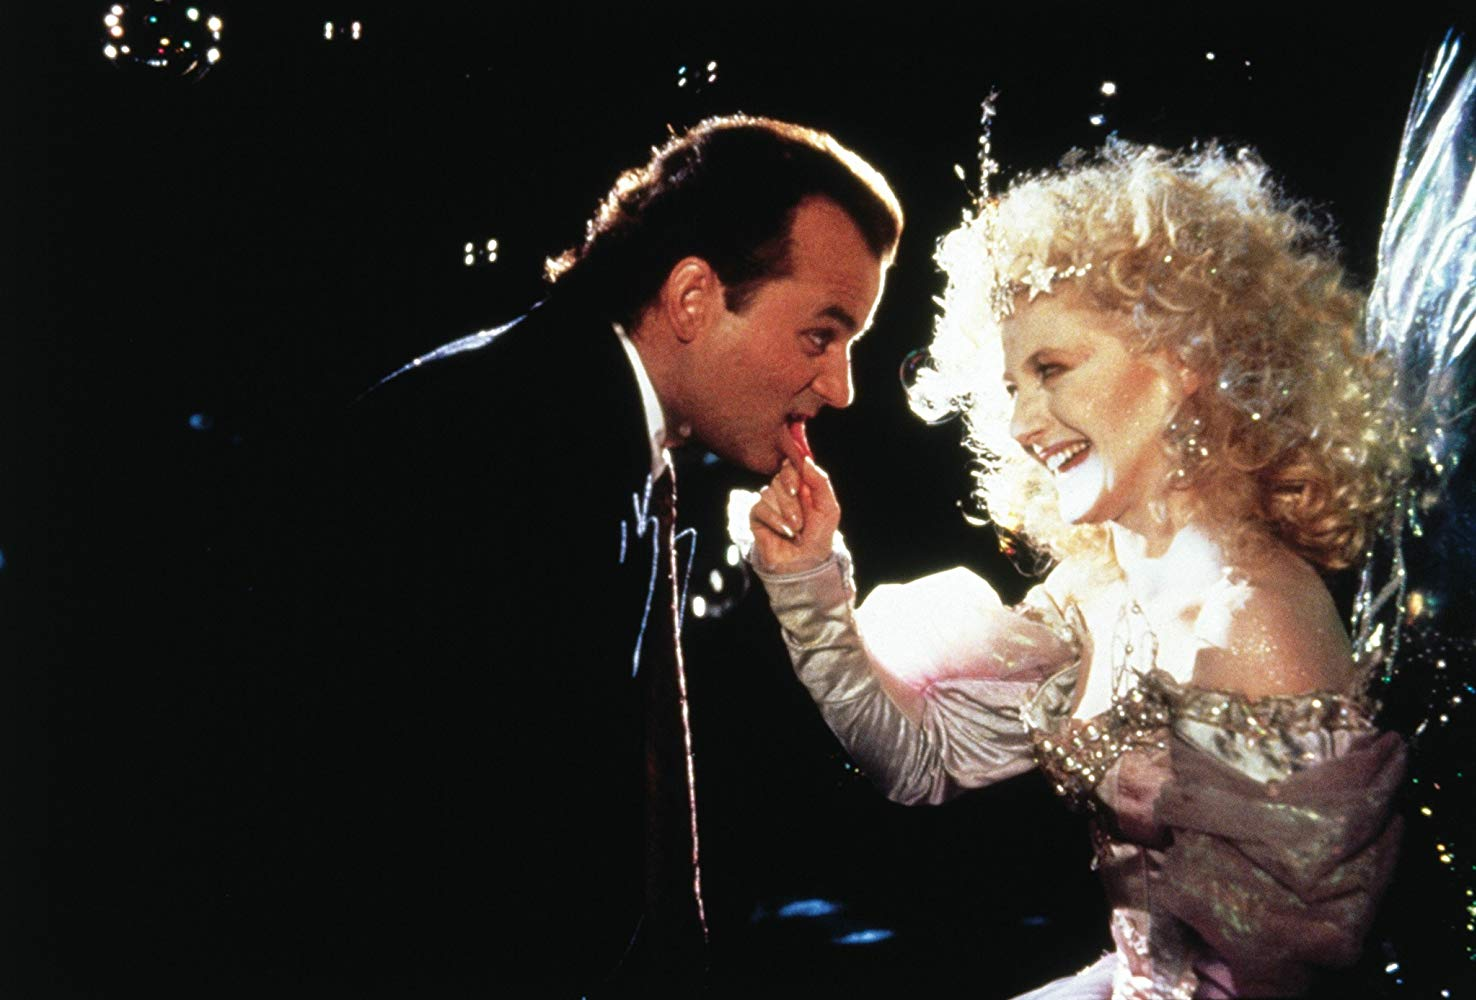 Bill Murray meets the Ghost of Christmas Present (Carol Kane) in Scrooged (1988)